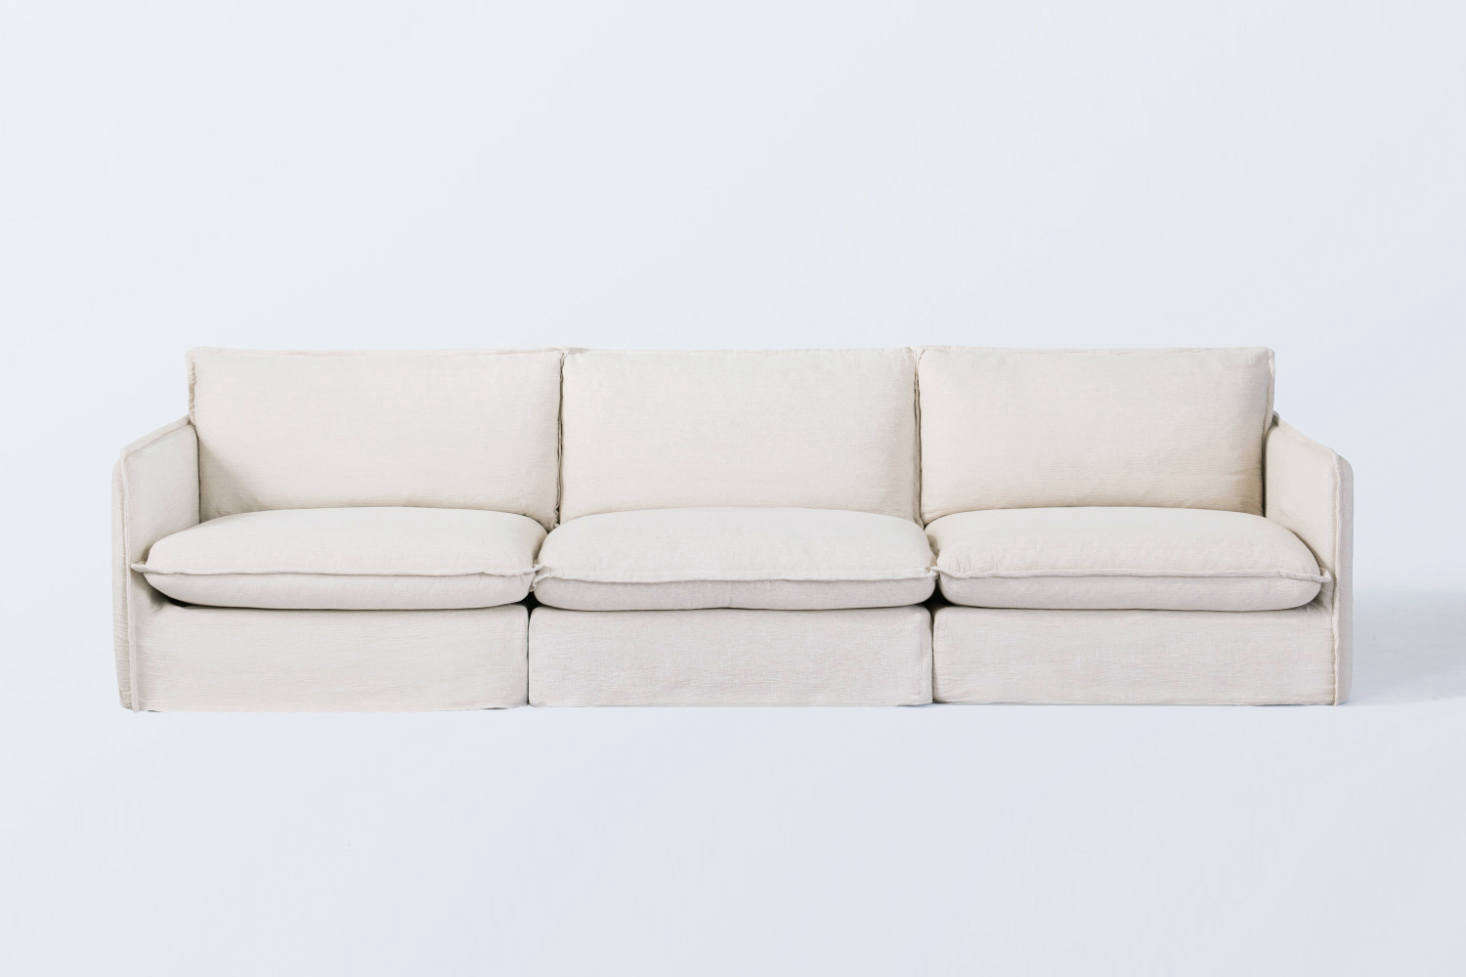 One of our favorite dependable sofas under $3,000: the Sixpenny Neva Modular 3-Piece Sofa, with a kiln-dried hardwood frame, reinforced corner blocking, and feather down cushions. See  Easy Pieces: 'First Sofas' Under $3,000 for nine more we like.